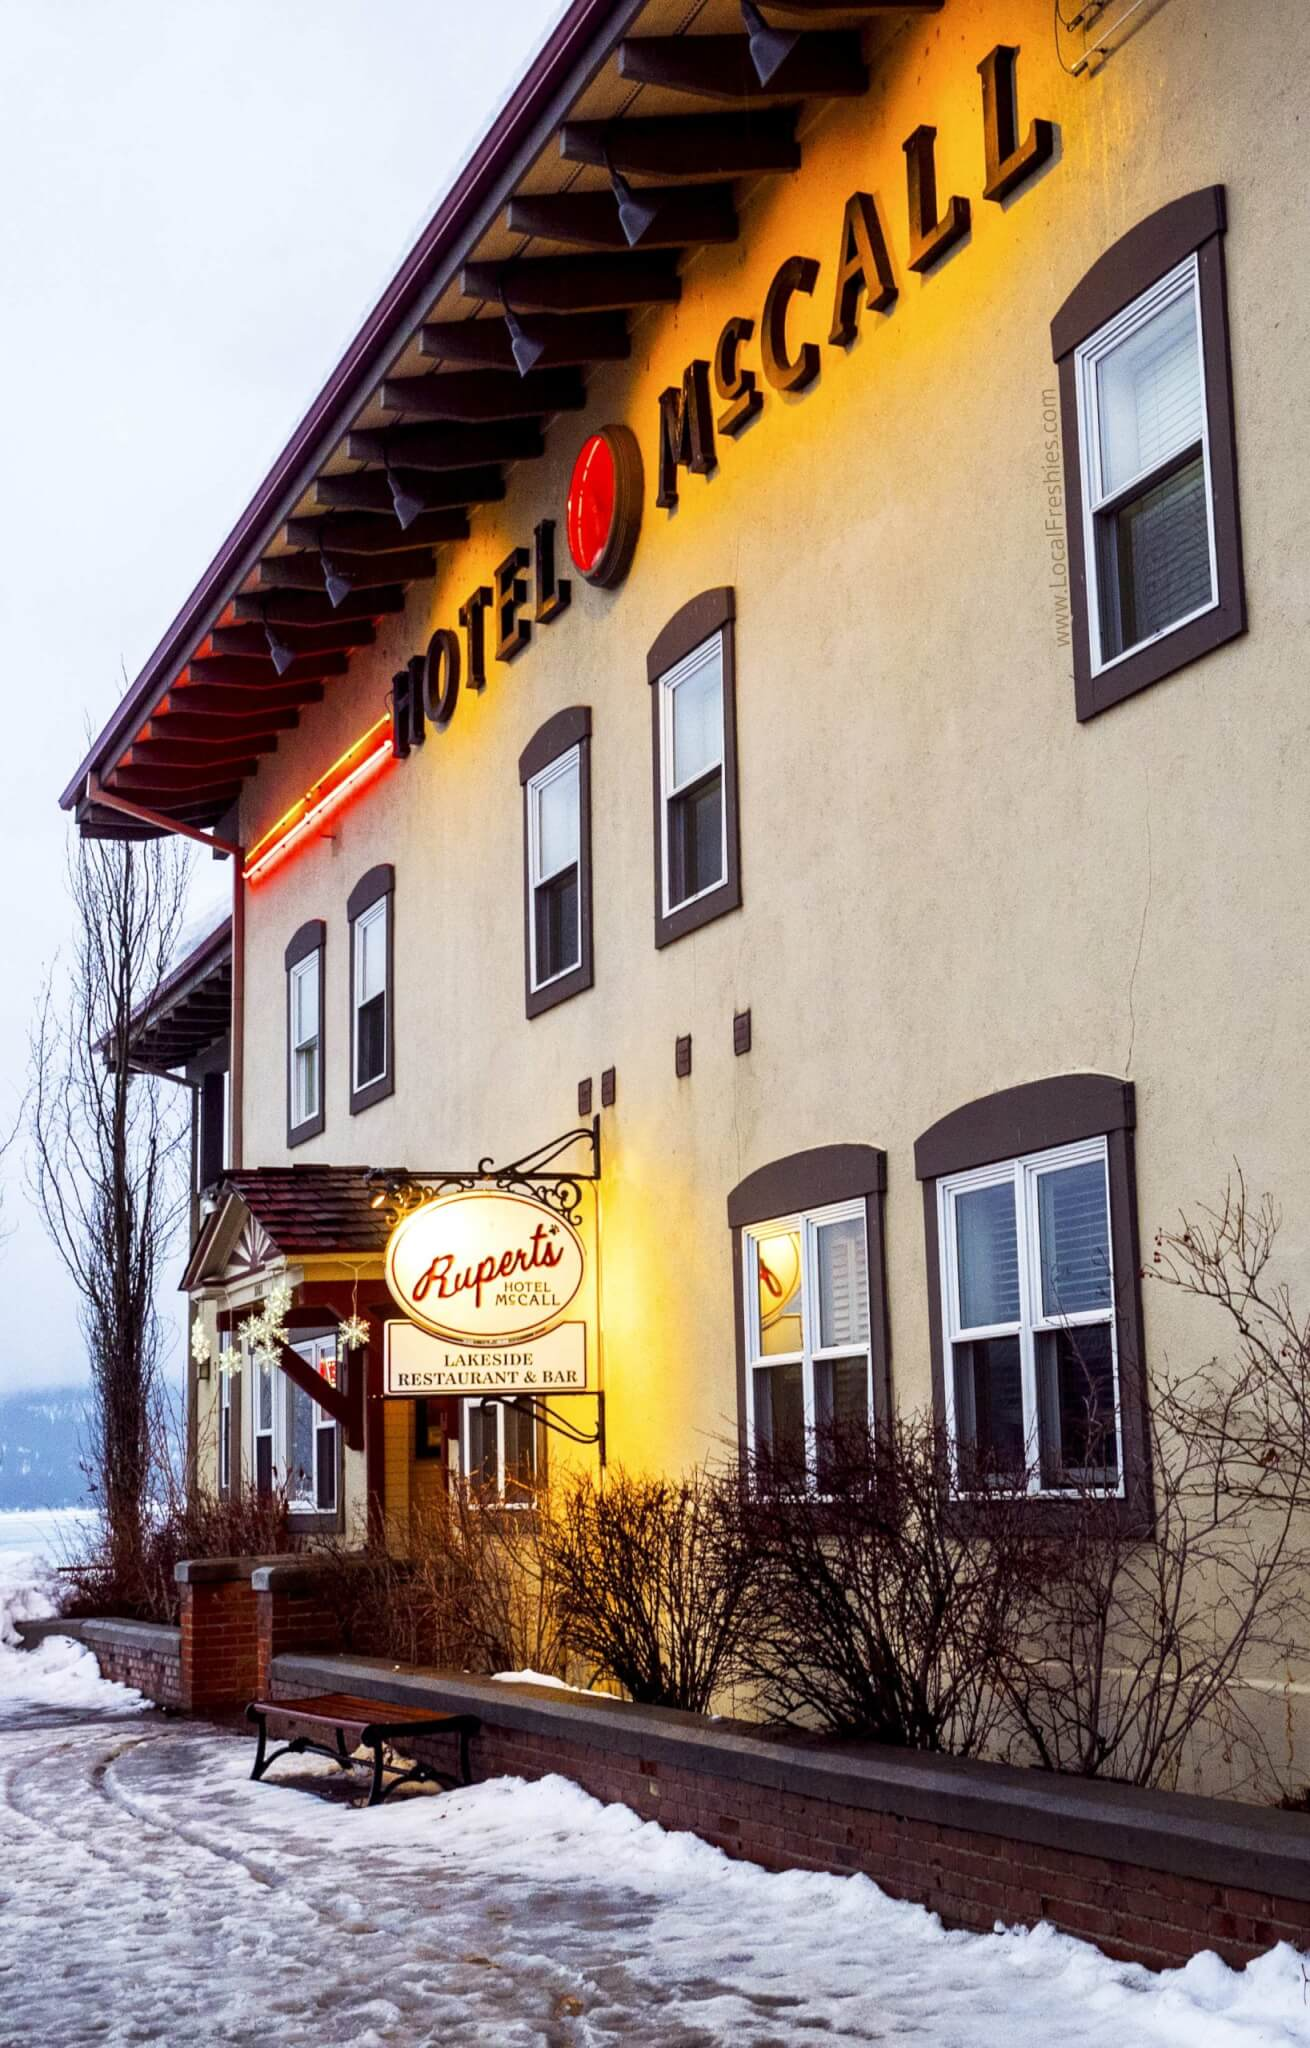 exterior of Hotel McCall in the winter